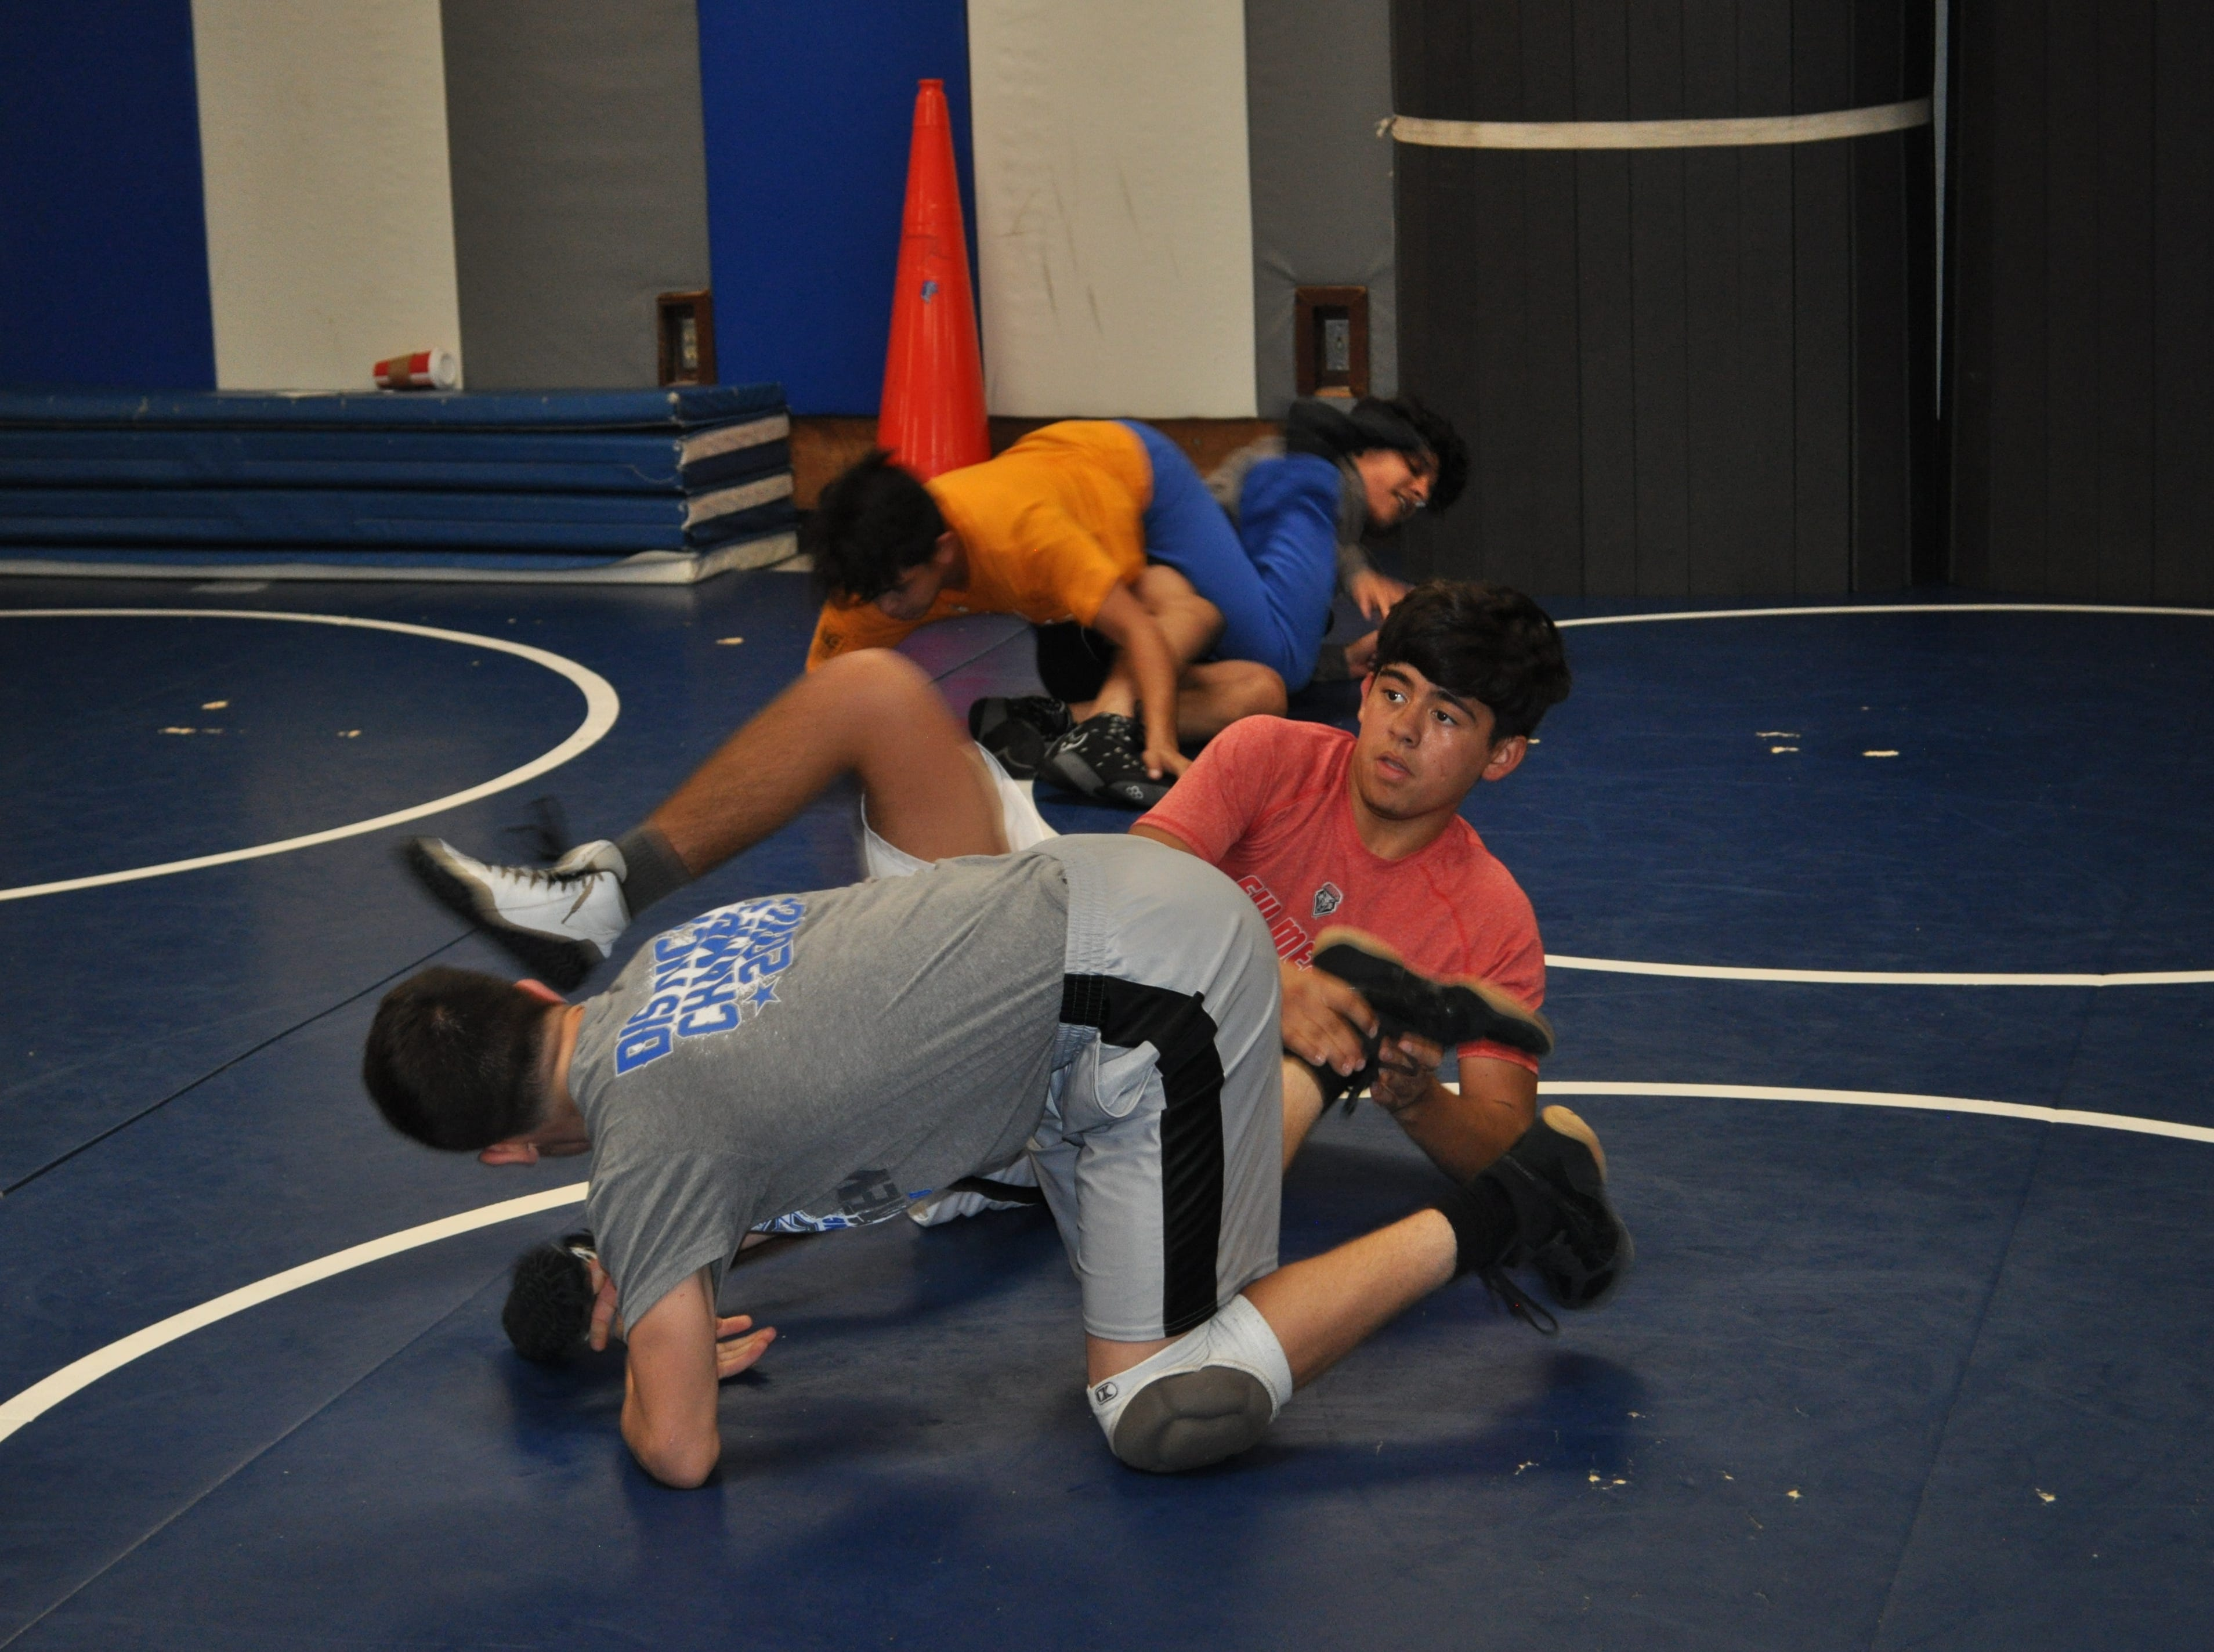 Carlsbad wrestlers get in mat work during Tuesday's practice. Carlsbad finished second in the 6A state tournament last year and looks to claim the title this season.